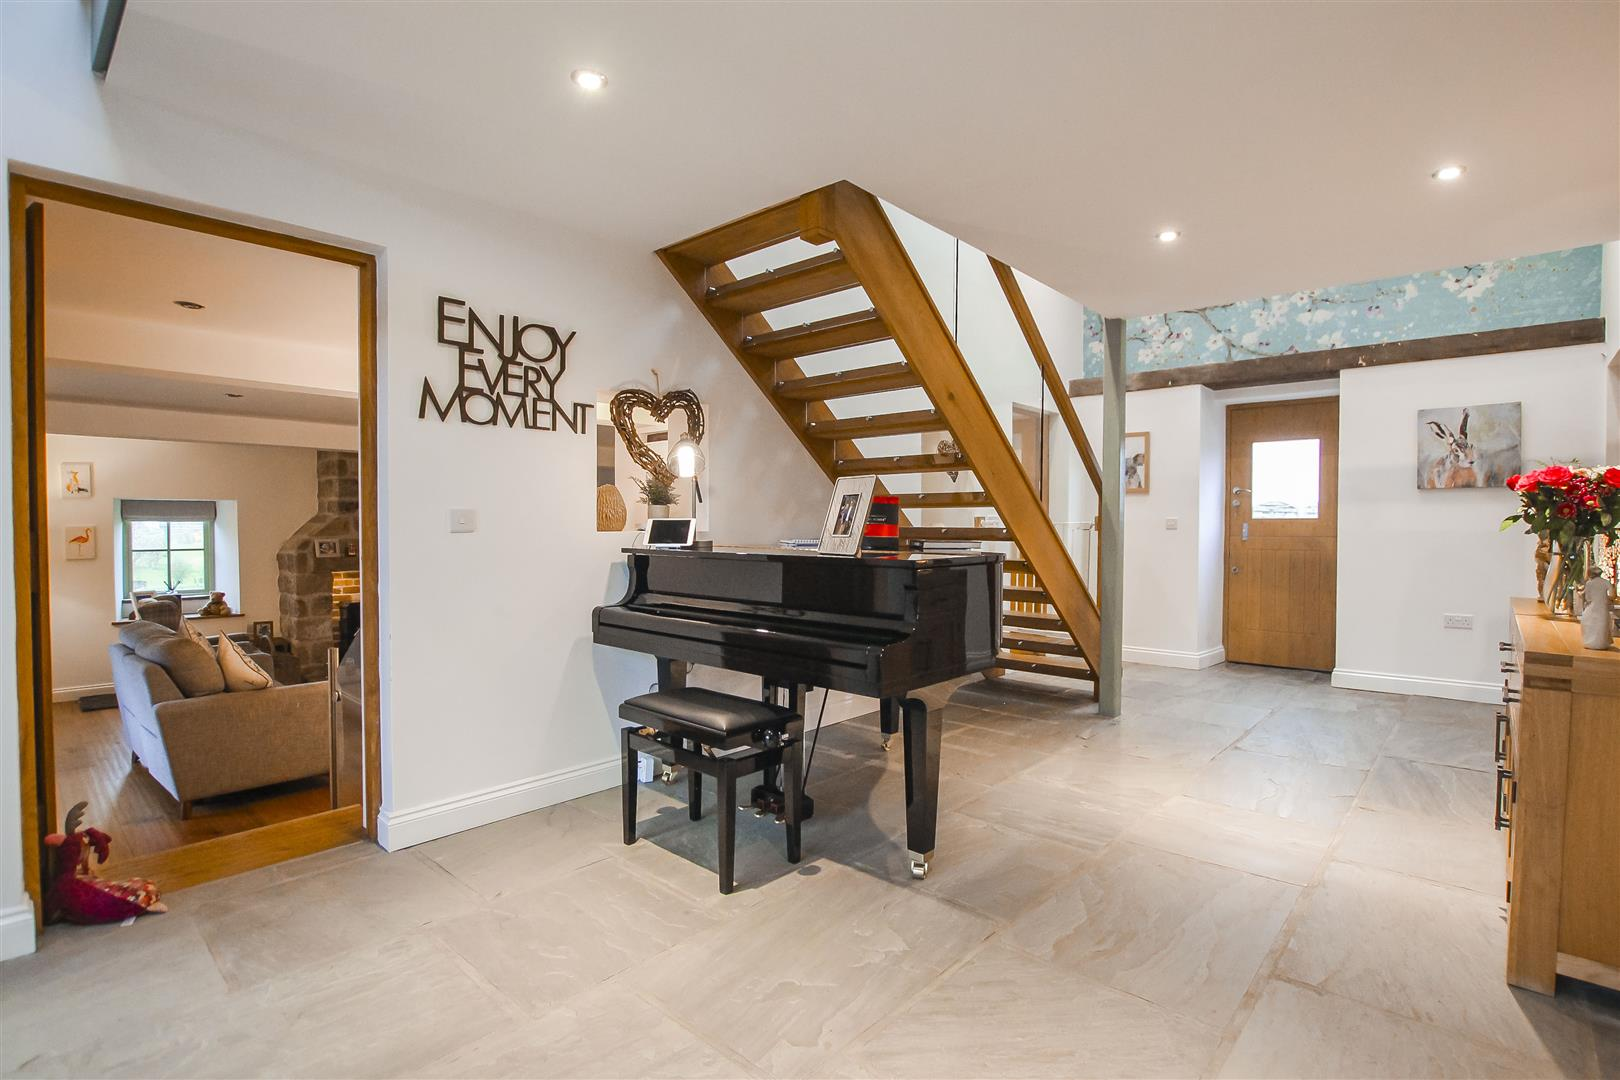 4 Bedroom Barn Conversion For Sale - Hallway